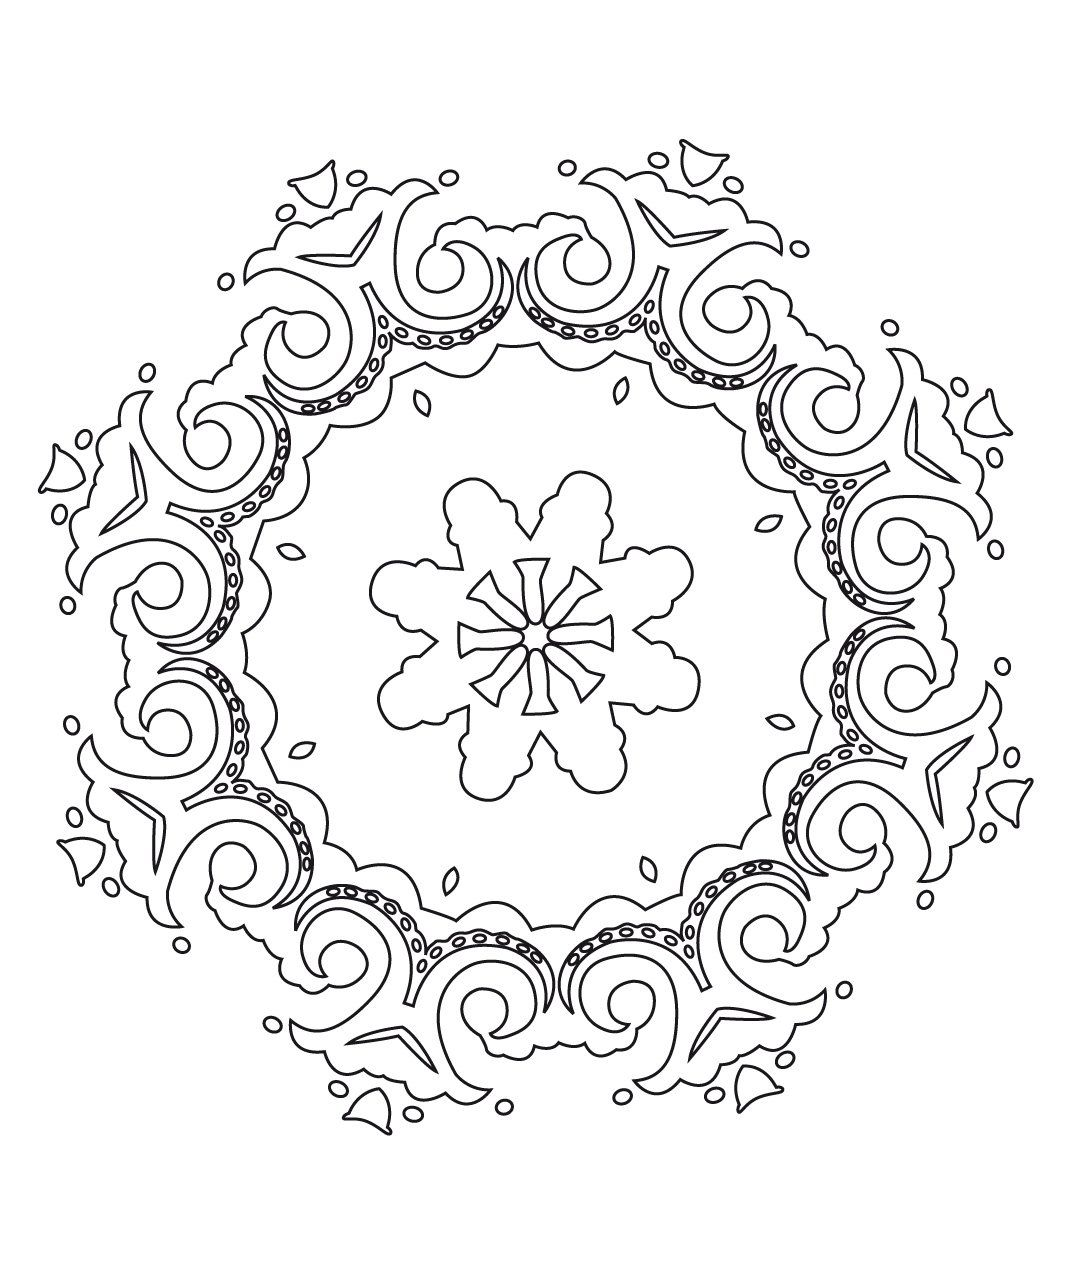 stci coloriage pour adultes et enfants mandalas colorier pinterest. Black Bedroom Furniture Sets. Home Design Ideas